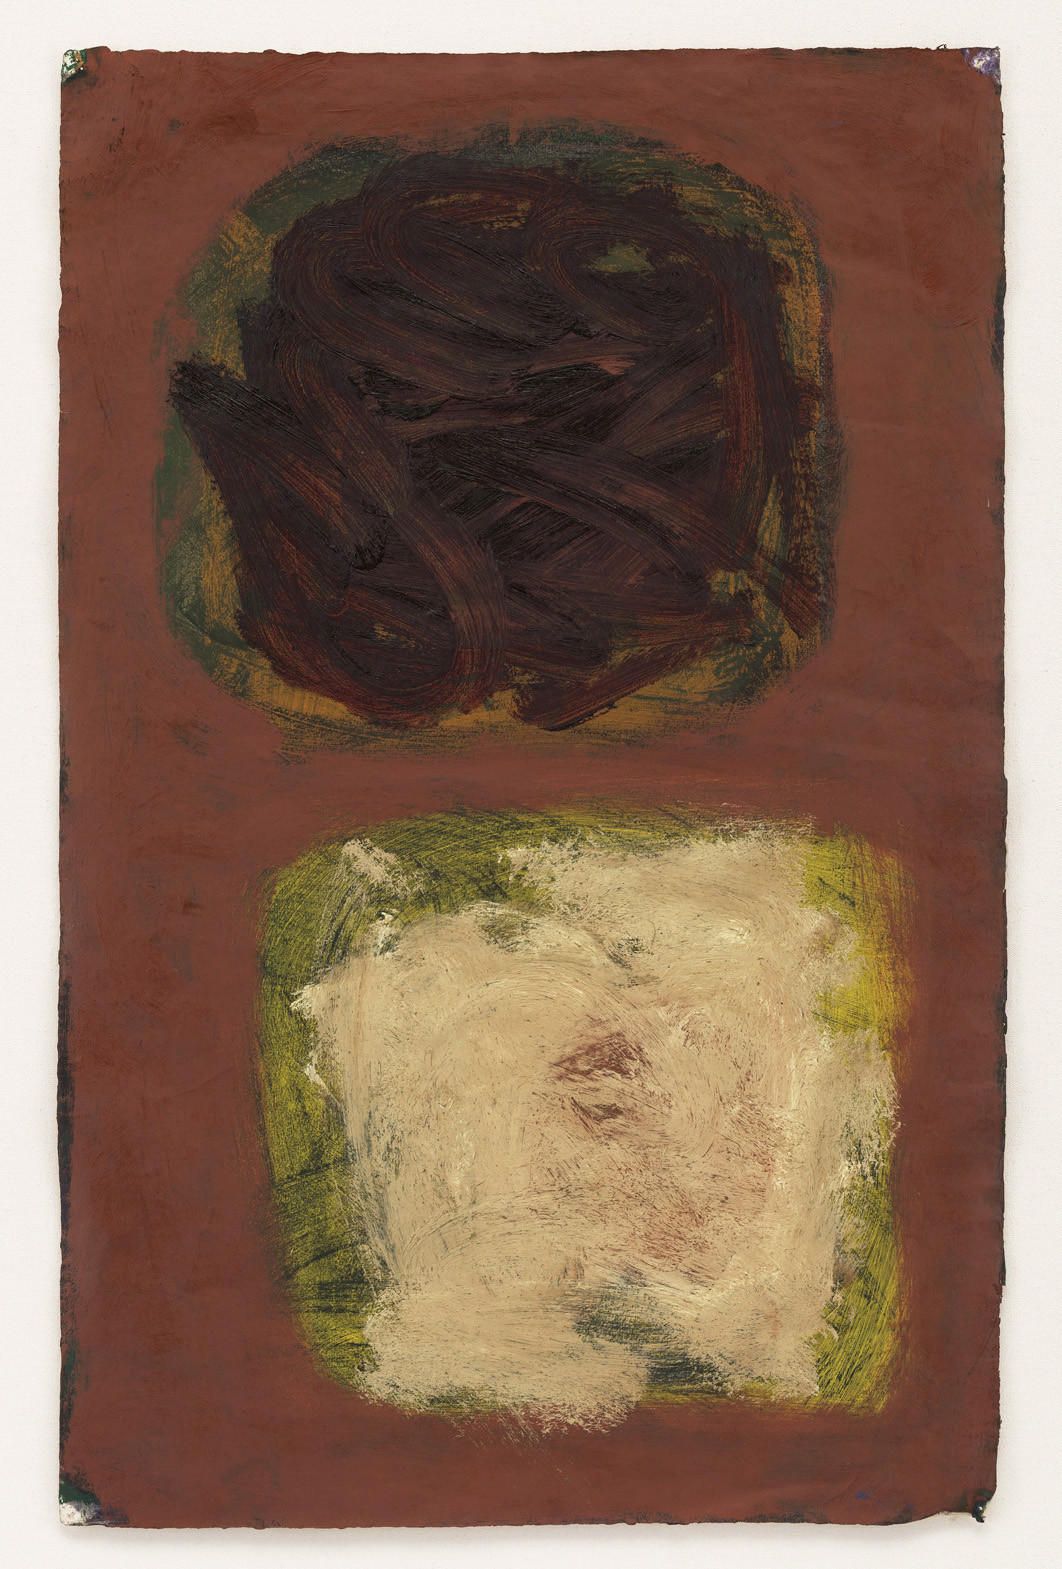 "<span class=""link fancybox-details-link""><a href=""/artists/130-patrick-heron/works/970/"">View Detail Page</a></span><div class=""artist""><strong>Patrick Heron</strong></div> 1920-1999 <div class=""title""><em>Plum and Dirty Naples</em></div> <div class=""signed_and_dated"">signed, titled and dated July 1960 verso</div> <div class=""medium"">oil on paper</div> <div class=""dimensions"">70 x 45 cms (27½ x 17¾ ins)<br /> framed: 92 x 66.5 cms (36 x 26 ins)</div>"